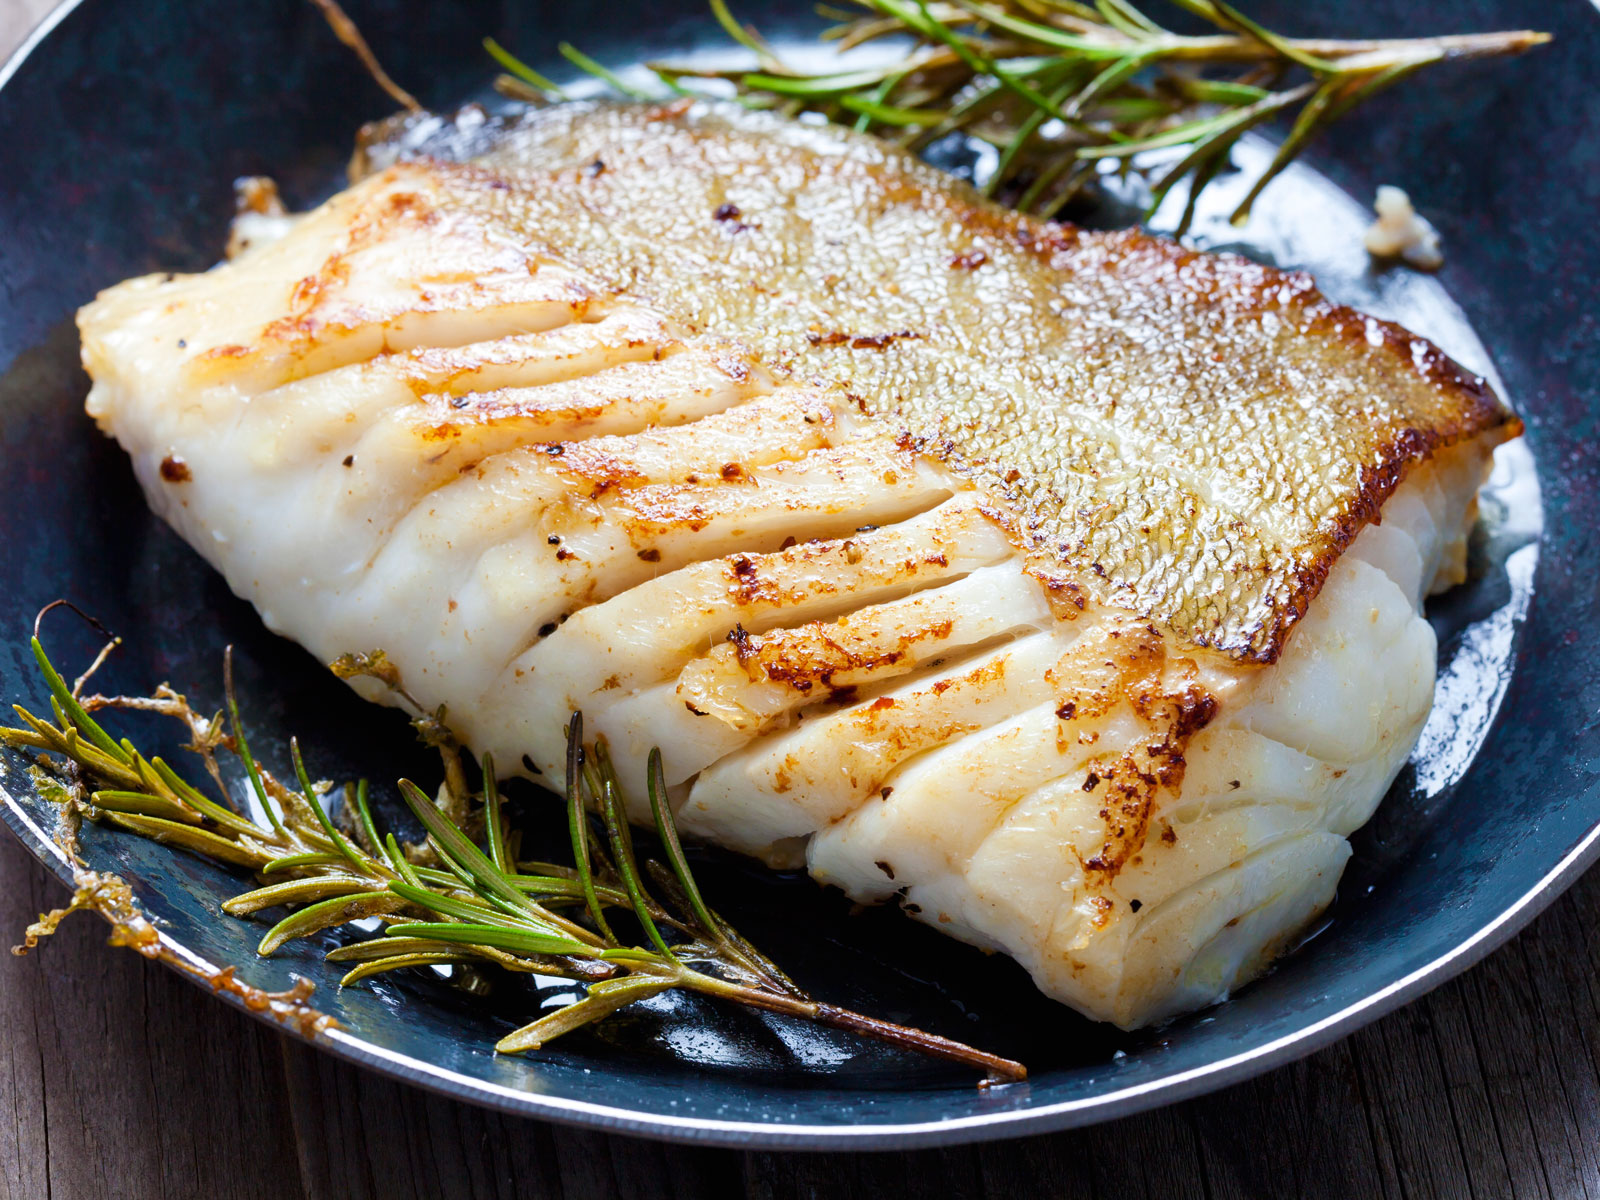 The 7 Golden Rules for Making Perfect Pan-Fried Fish